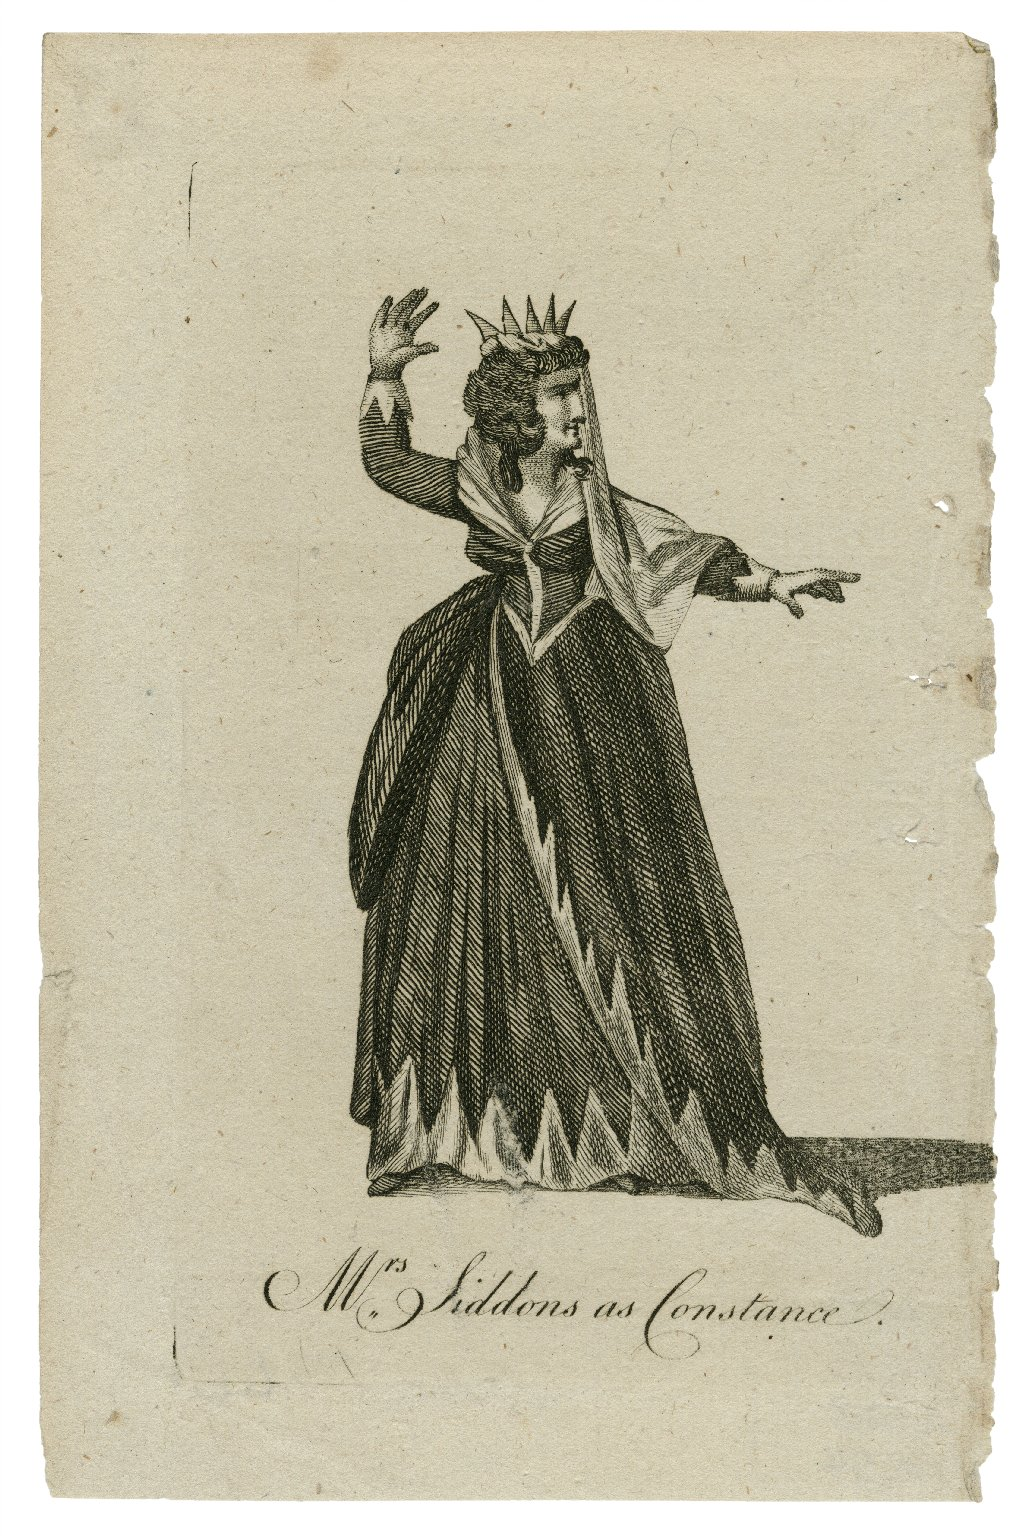 Mrs. Siddons as Constance [in Shakespeare's King John] [graphic].